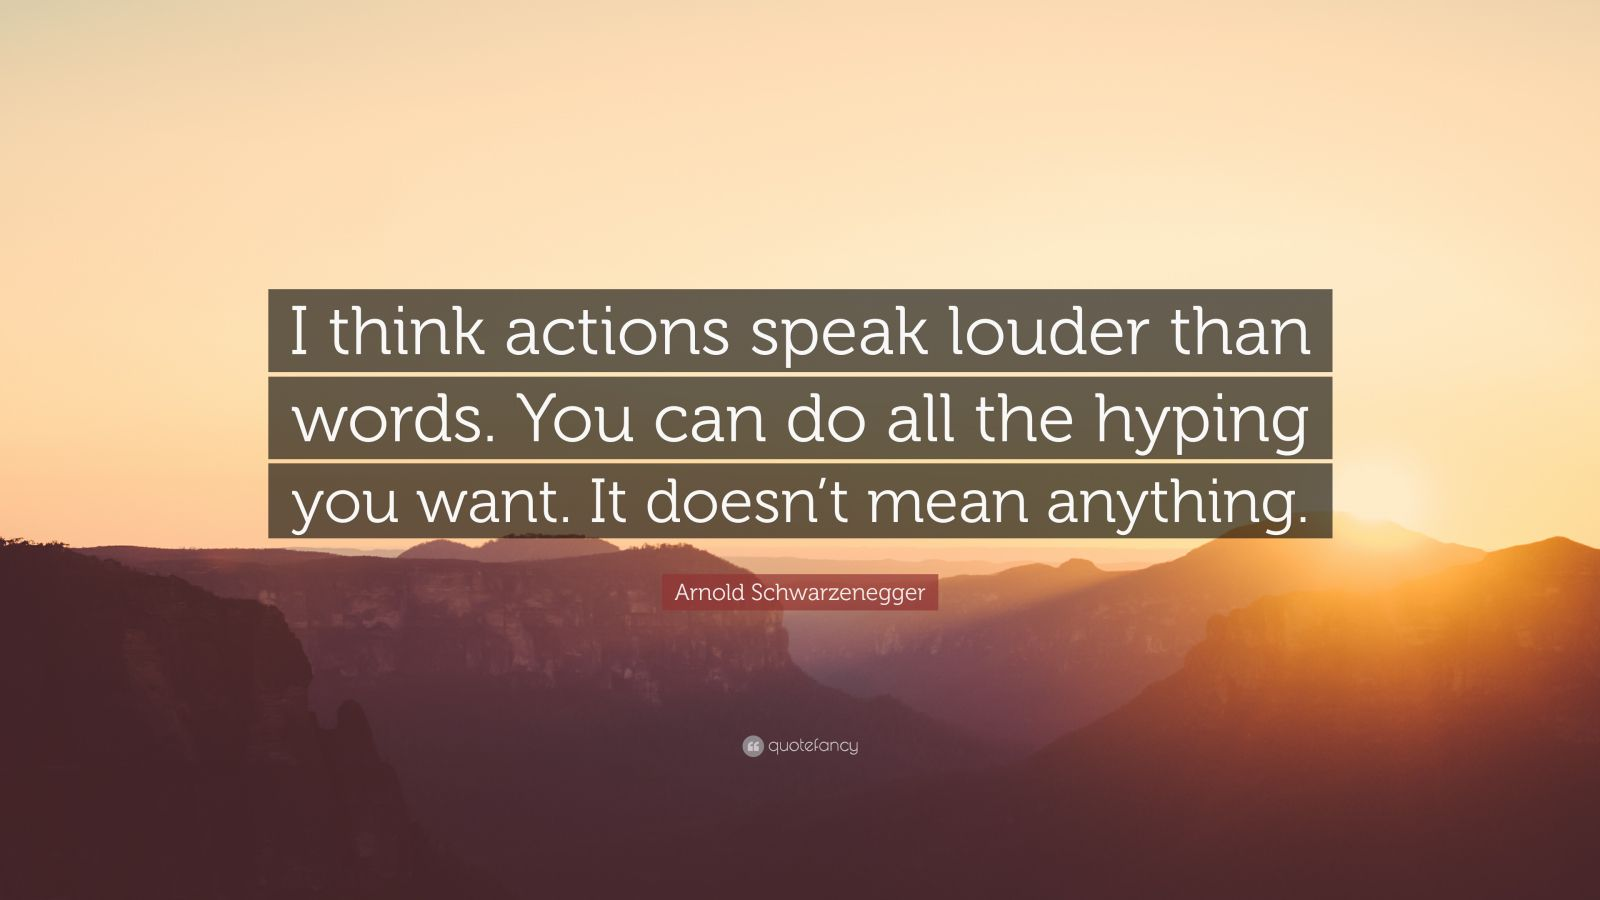 """Arnold Schwarzenegger Quote: """"I think actions speak louder than words. You can do all the hyping you want. It doesn't mean anything."""""""